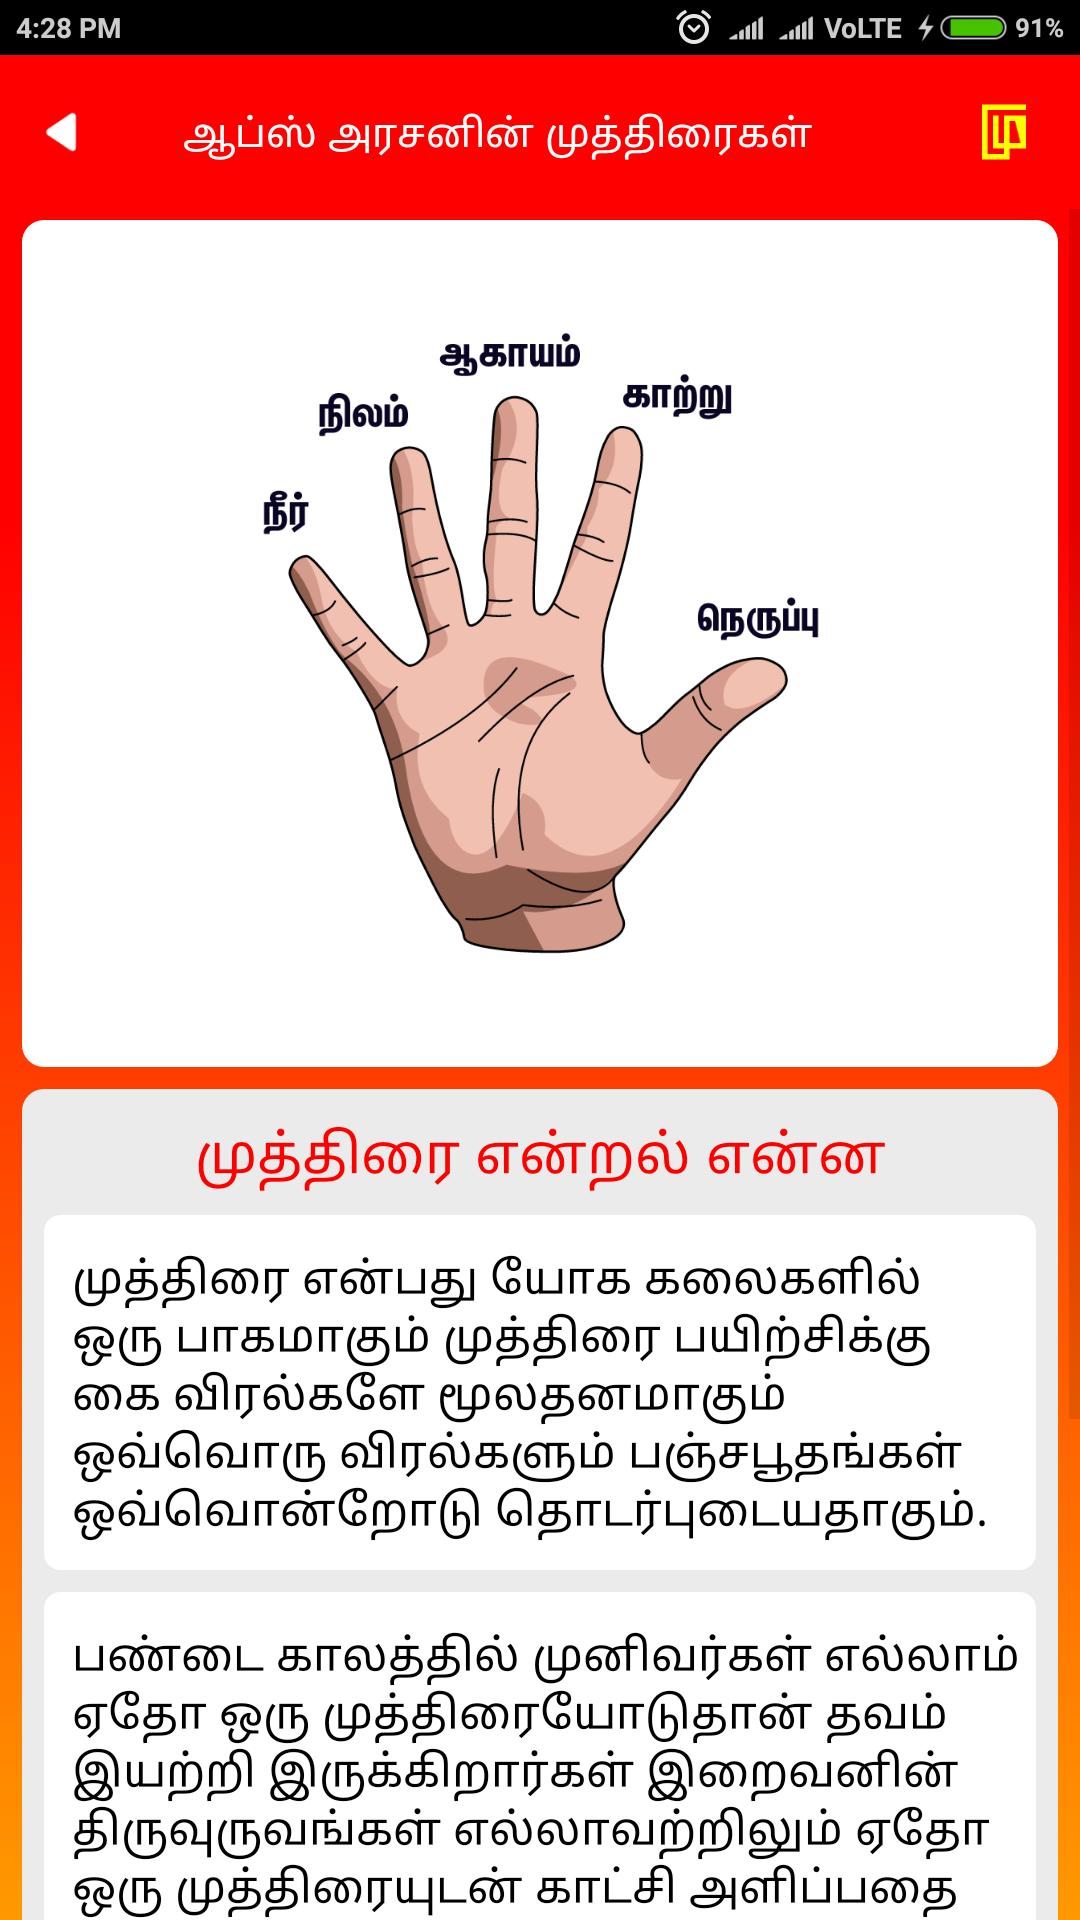 Yoga Mudra Hand Mudra Gesture Benefits Tamil For Android Apk Download